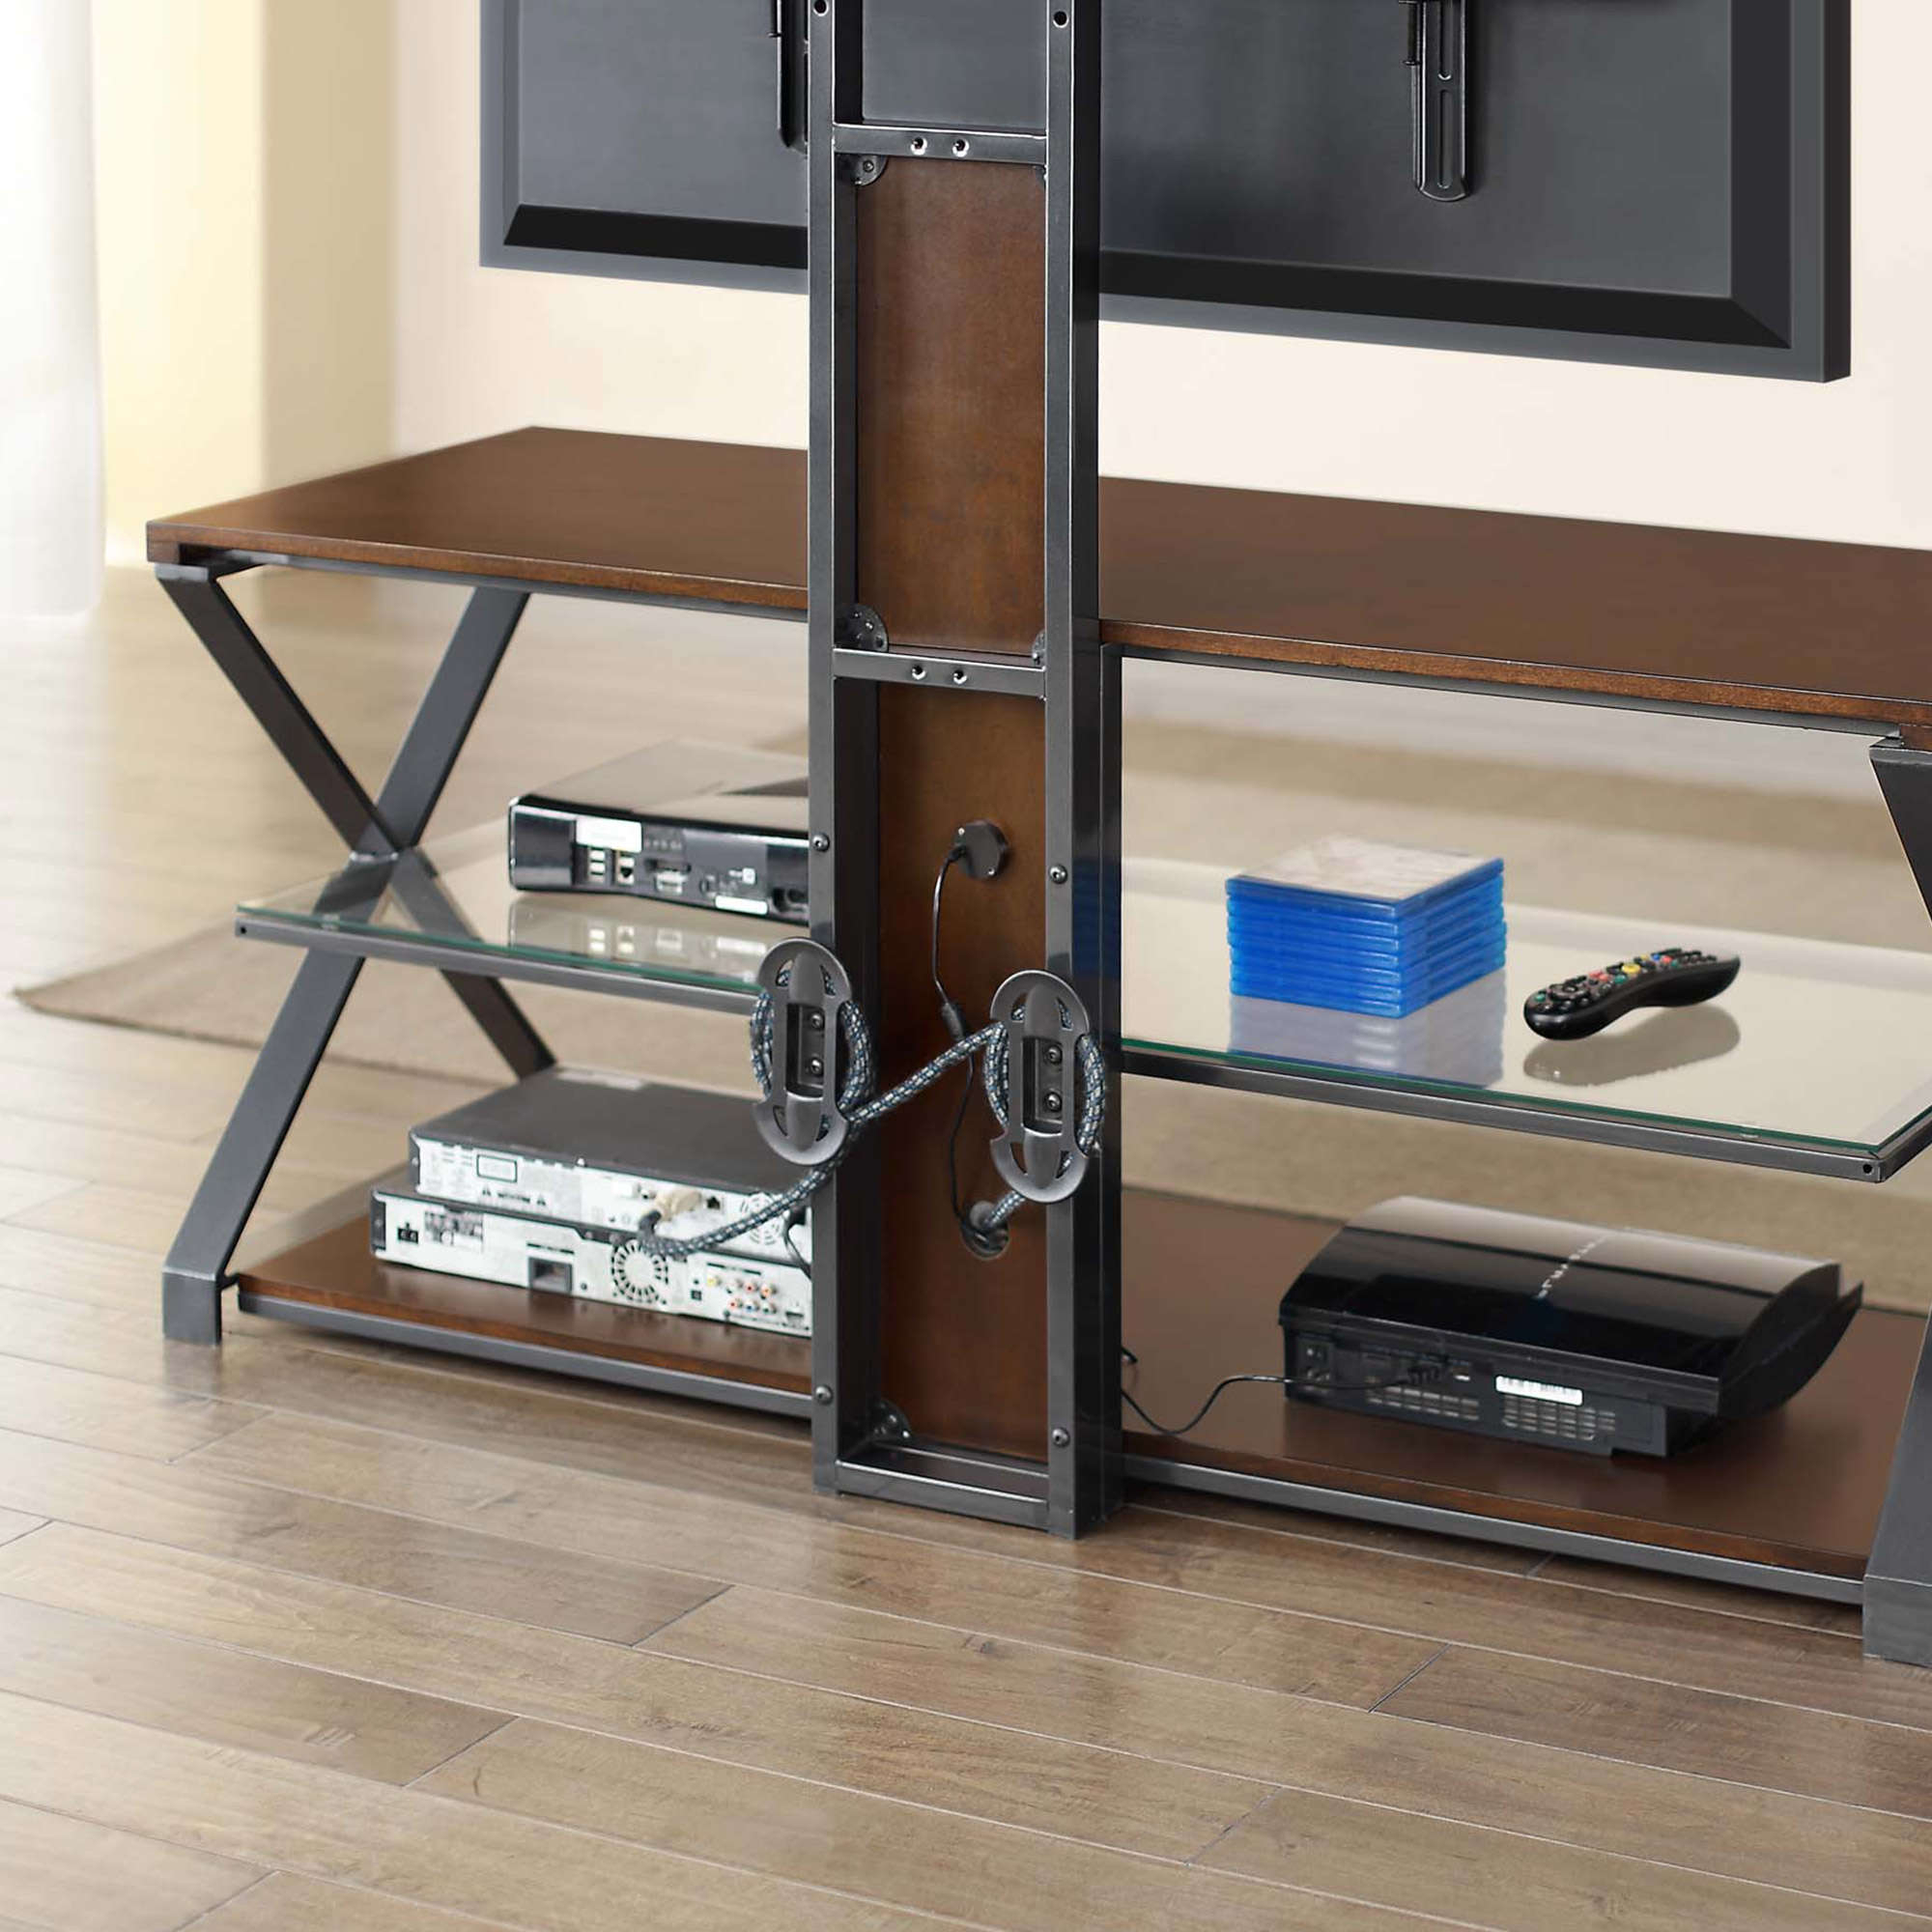 "Jaxon 3 In 1 Cognac Tv Stand For Tvs Up To 70"" – Walmart Intended For Jaxon 71 Inch Tv Stands (View 16 of 20)"